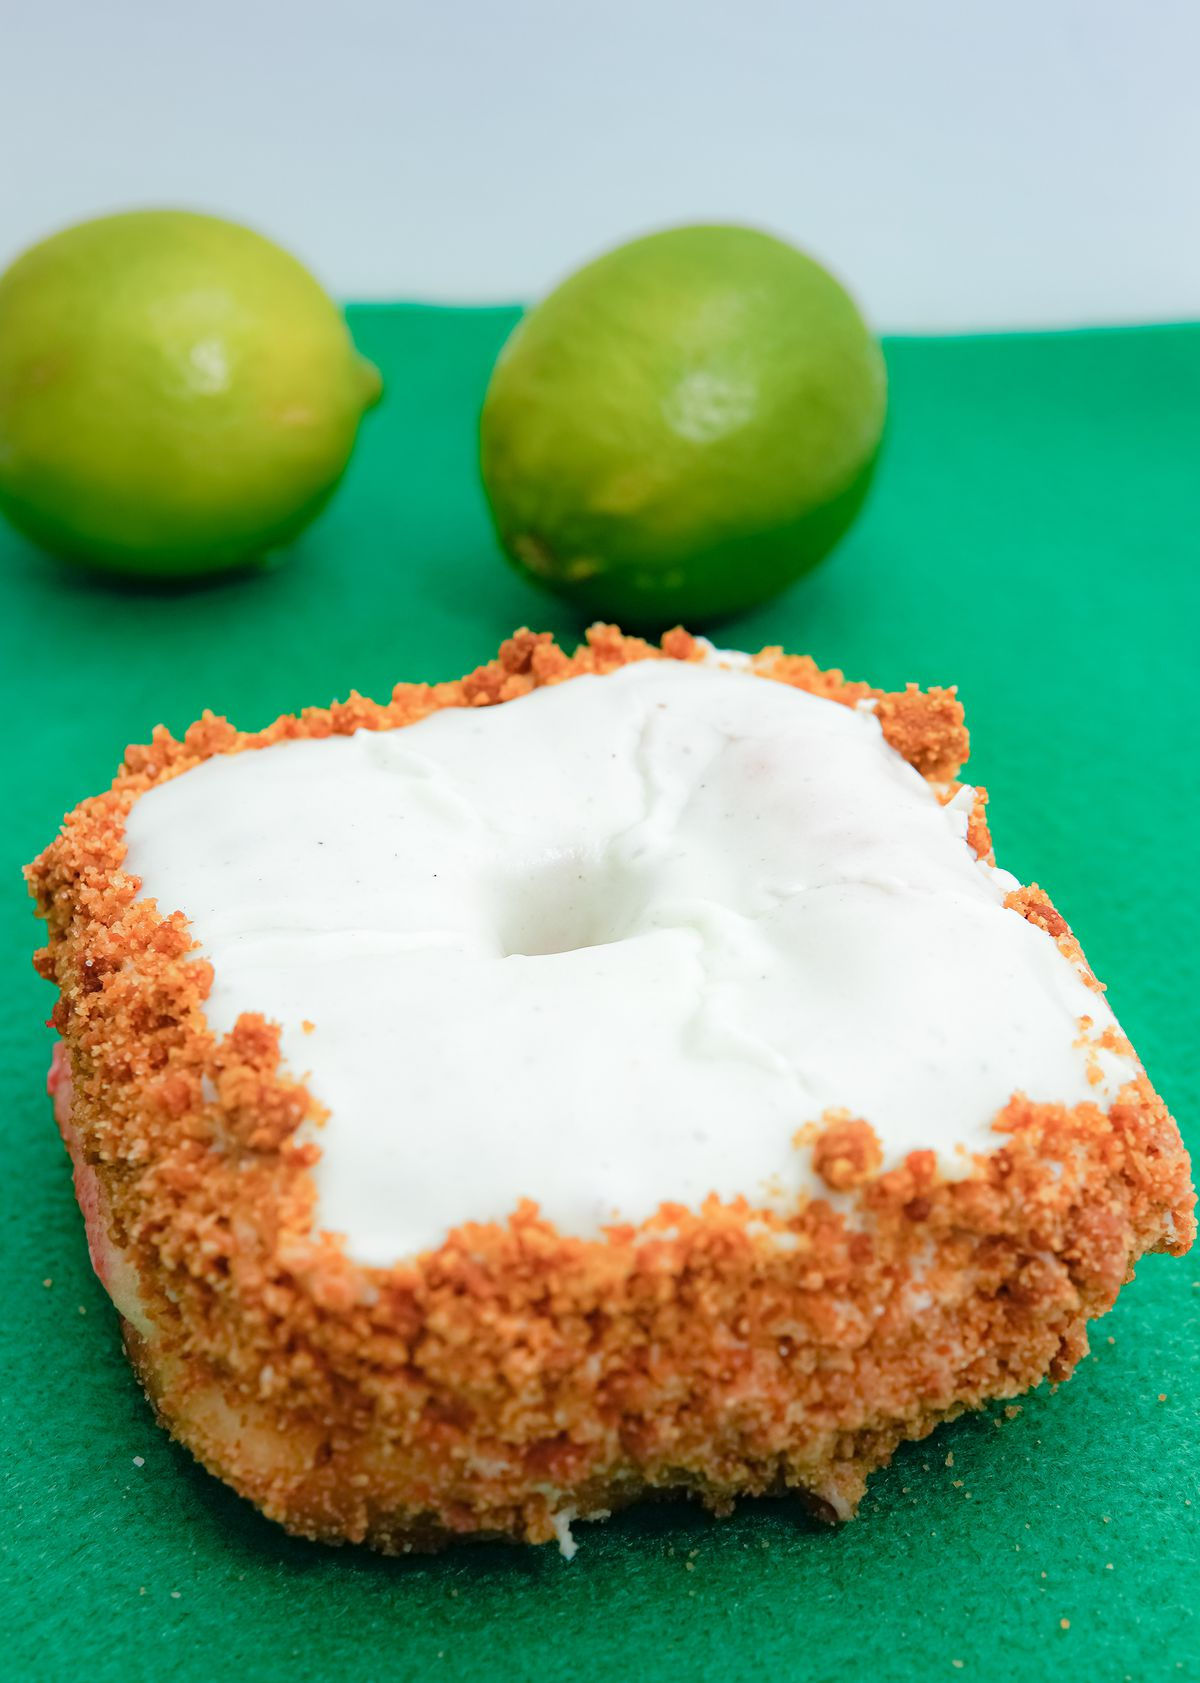 A key lime doughnut from Astro